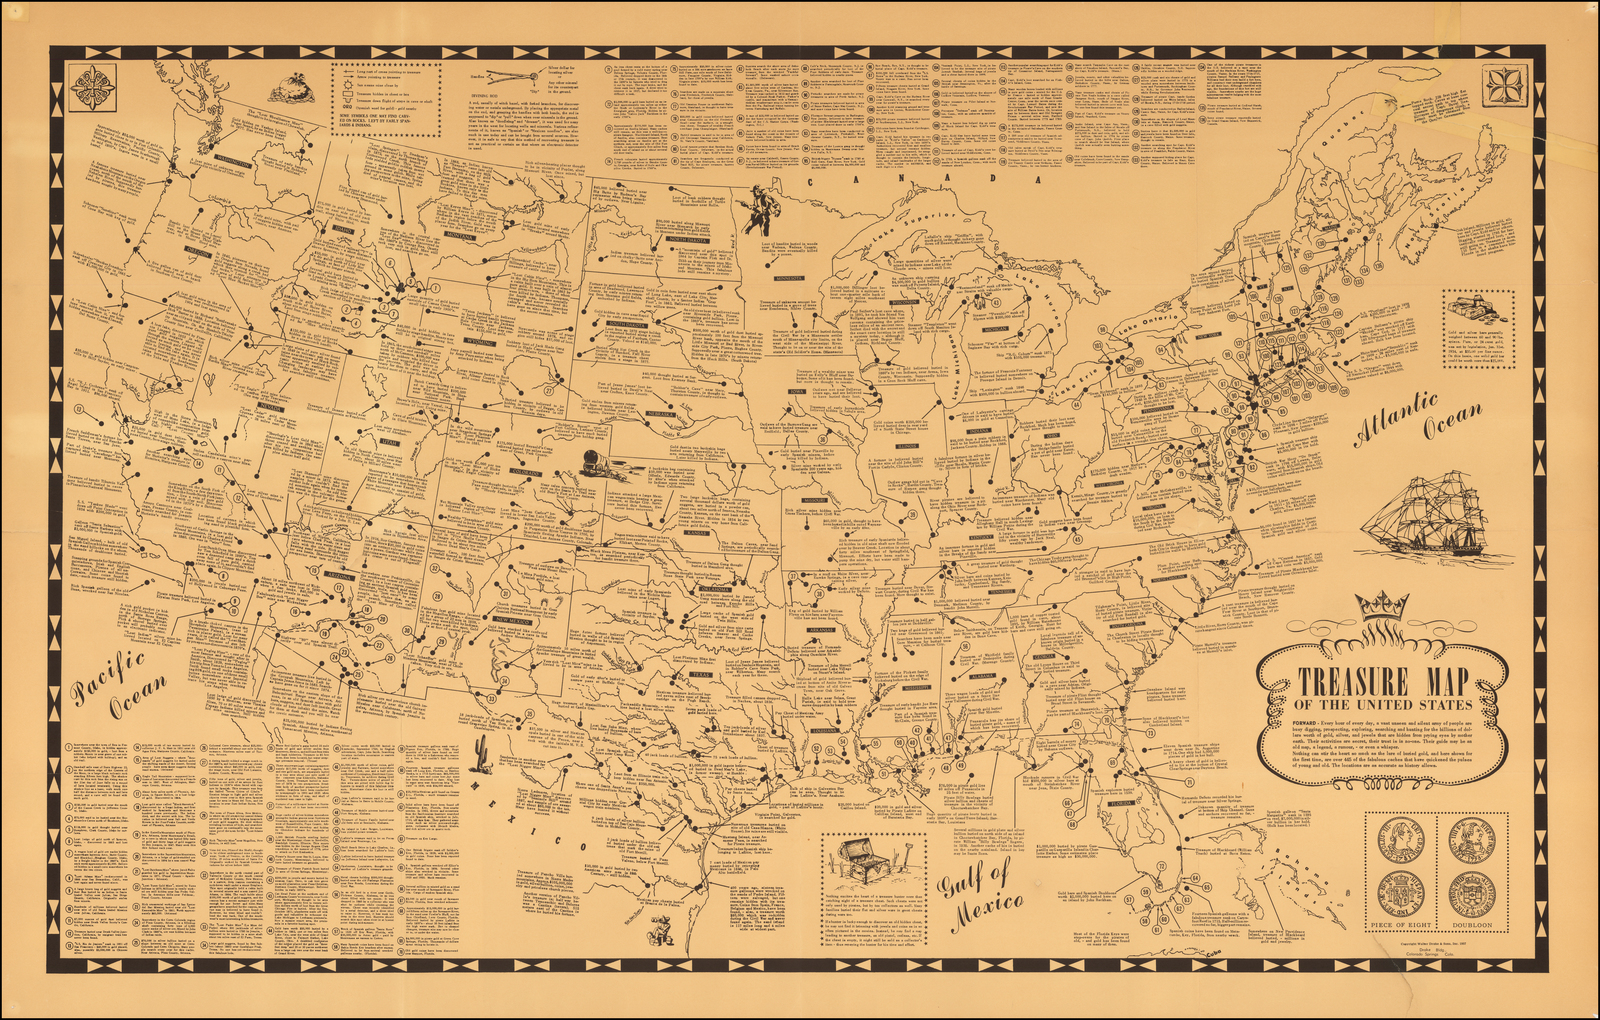 Treasure Map Of The United States Barry Lawrence Ruderman